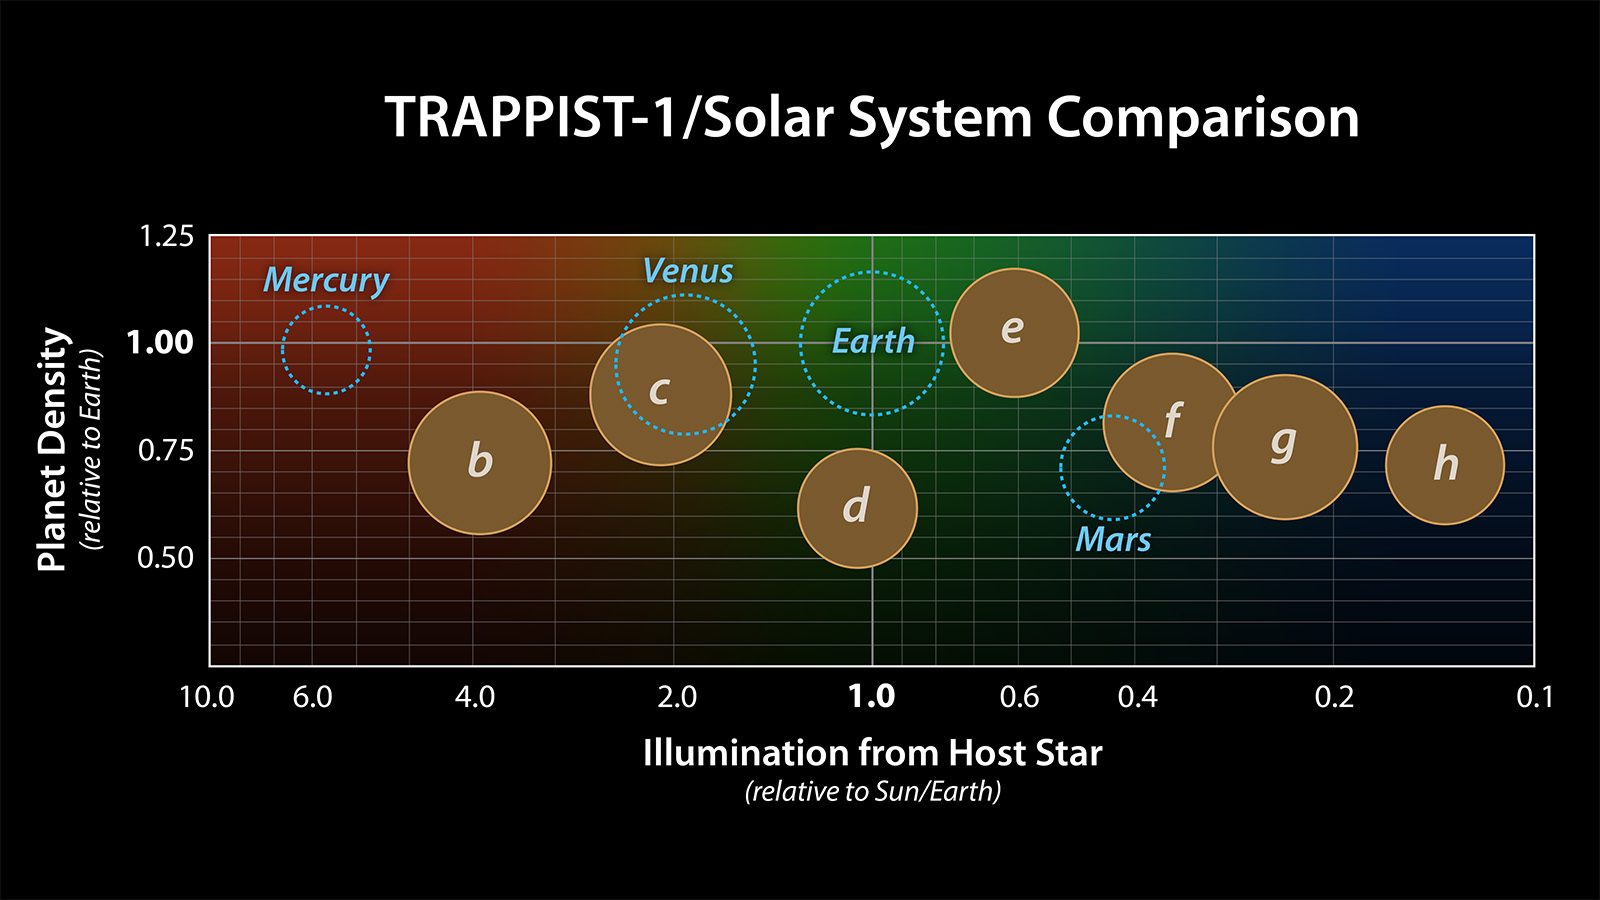 Comparing TRAPPIST-1 to the Solar System